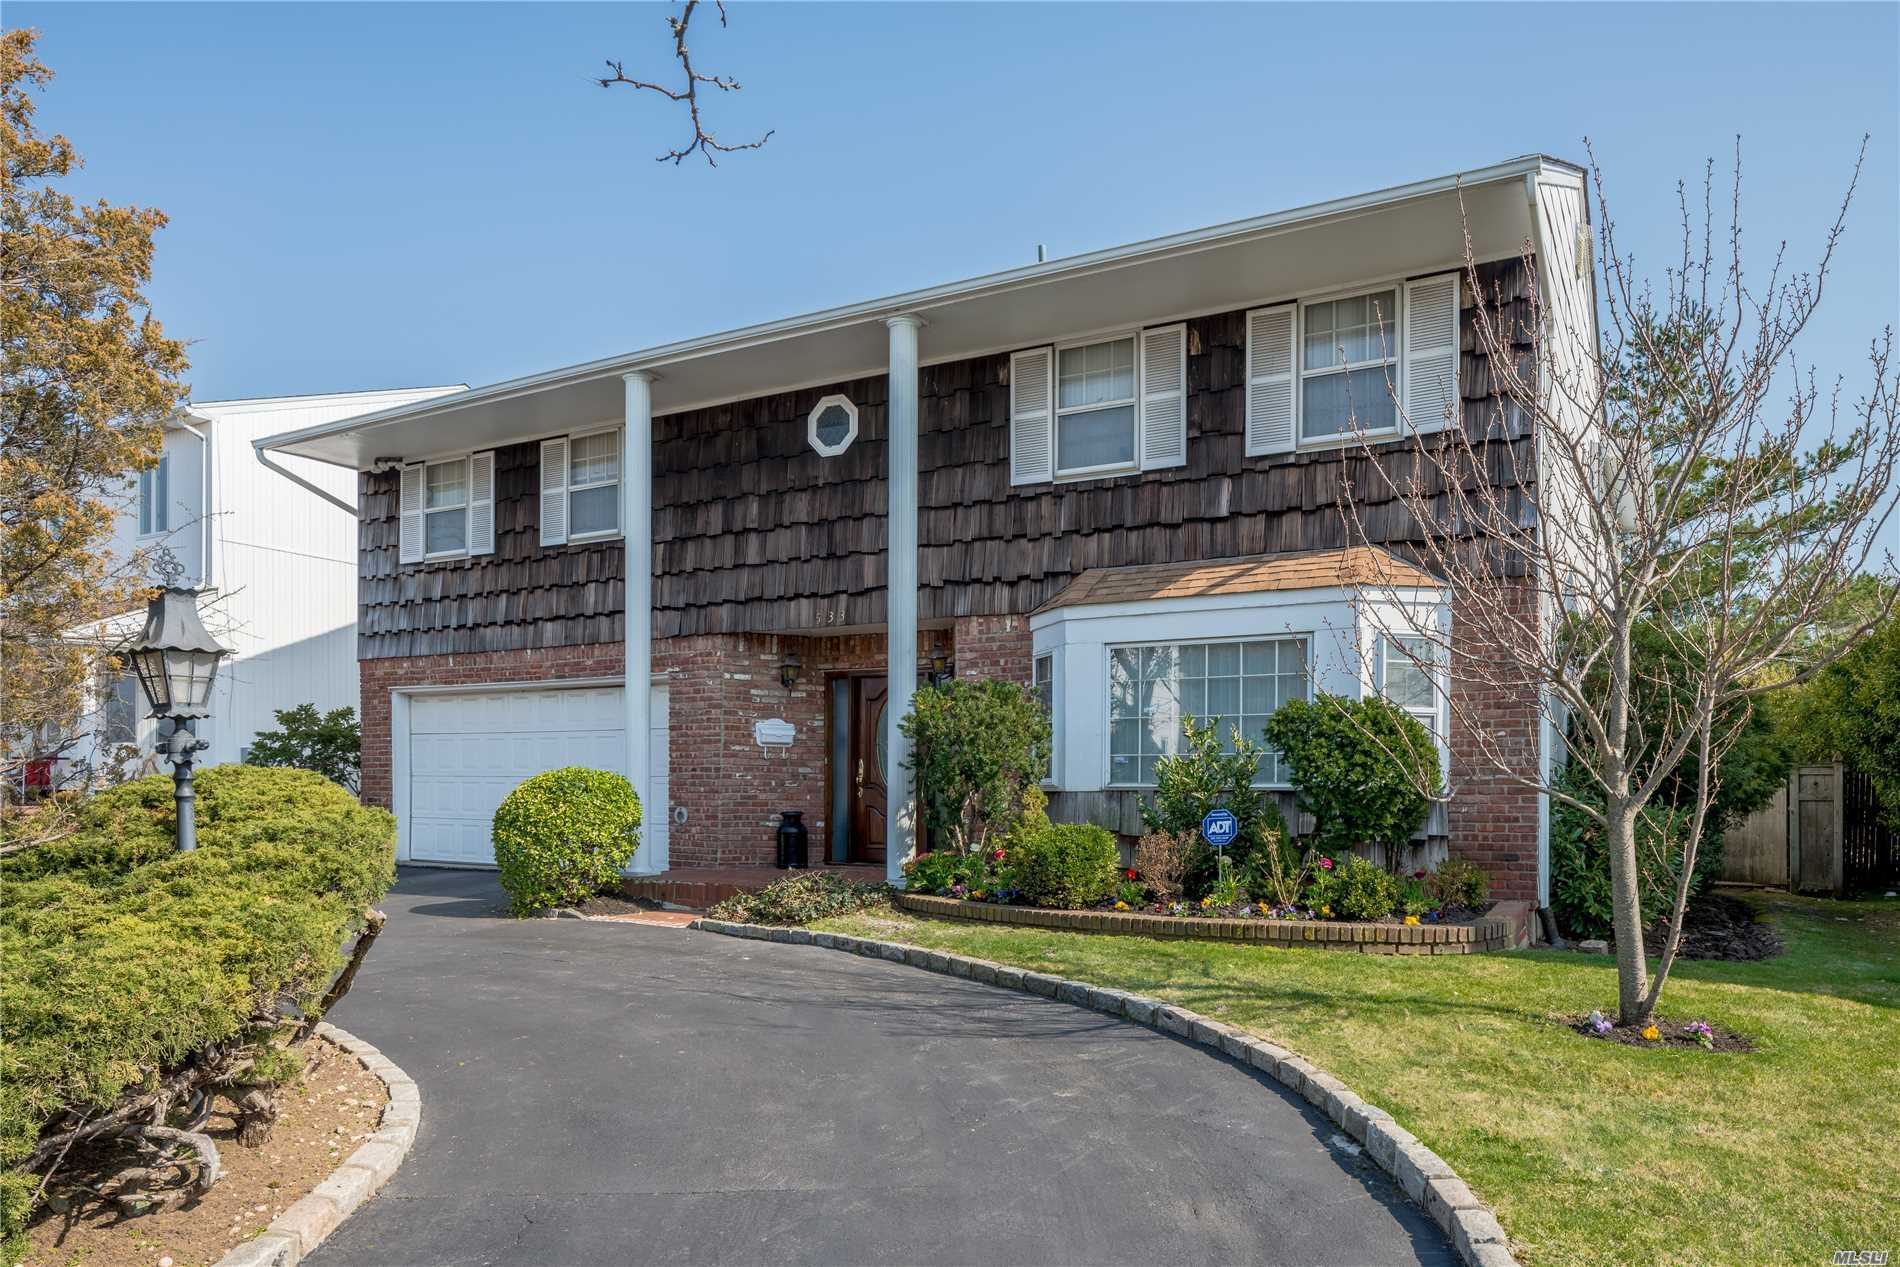 Beautiful Splanch On A Quiet Street. Spacious Home Featuring Circular Driveway, 2 Car Garage, Large Eik With Granite Counter Tops, Formal Dr, Den W/Fireplace & Living Room And 2 1/2 Bathrooms. Master Br With Ensuite And Additional Space For Br/Office And 3 Large Additional Br's. Has Adt Alarm System, Igs And Central Air Conditioning. Also New Heating System And Hot Water Tank. Gas Heating. In Walking Distance To House Of Worship!